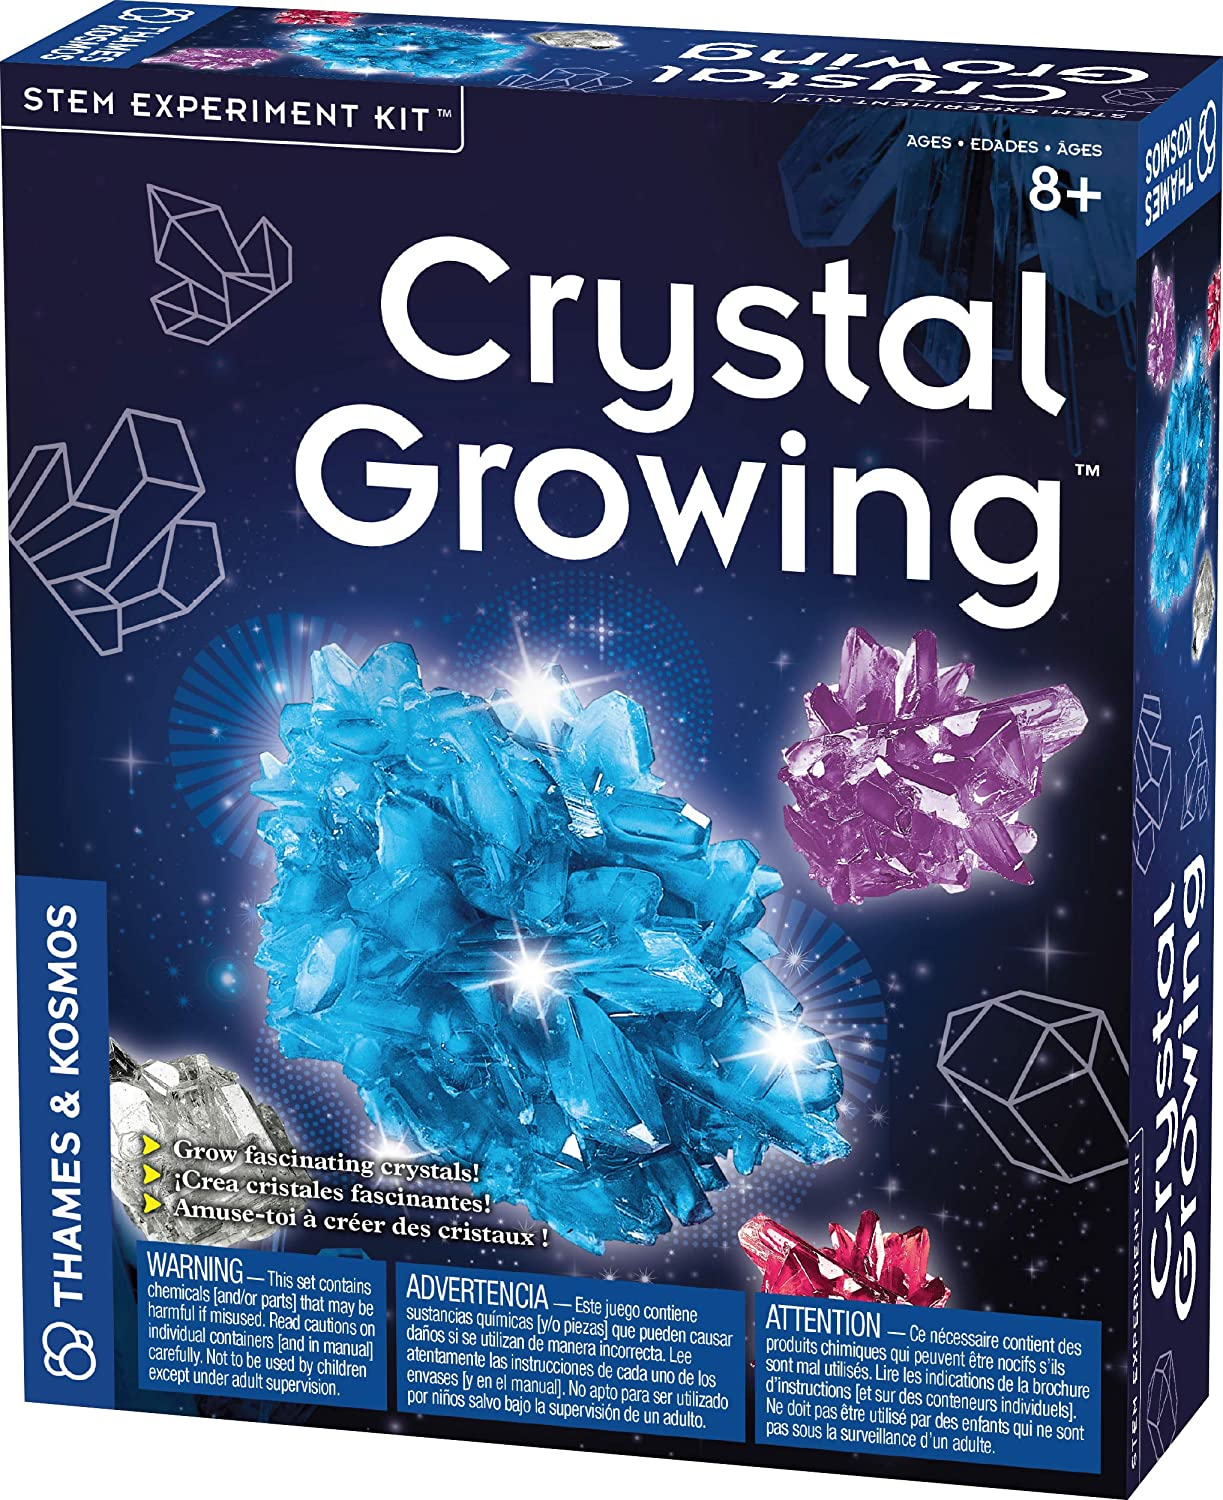 Thames & Kosmos Crystal Growing STEM Experiment Kit | Grow Sparkling, Colorful Crystals of Different Sizes! | Learn About Crystallization| 3-Language Instruction Manual (English, French, Spanish)